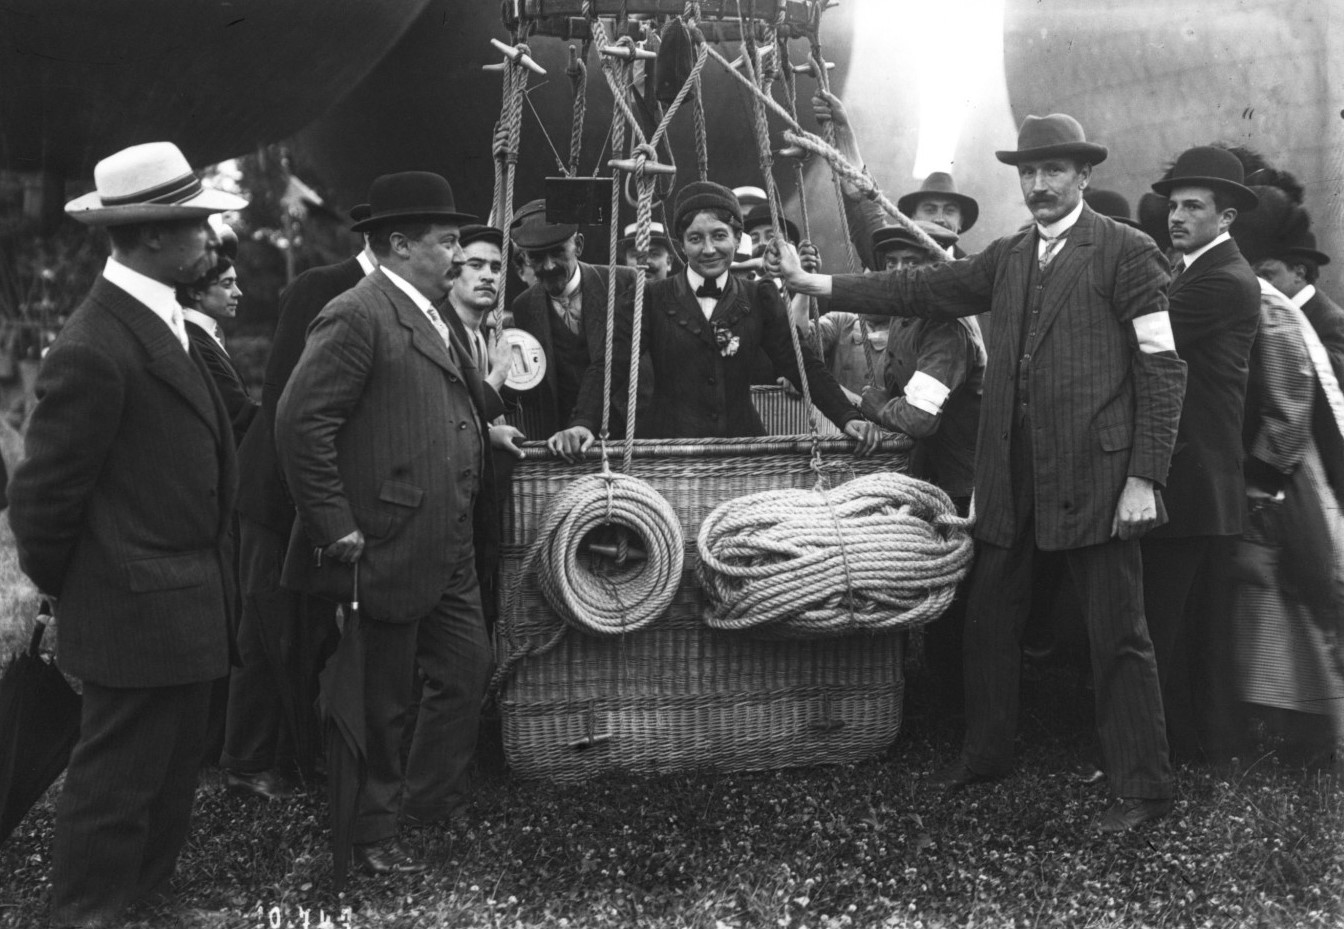 Mlle_Marvingt_Grand_prix_Aéro_Club_de_France_1910_(cropped).jpg